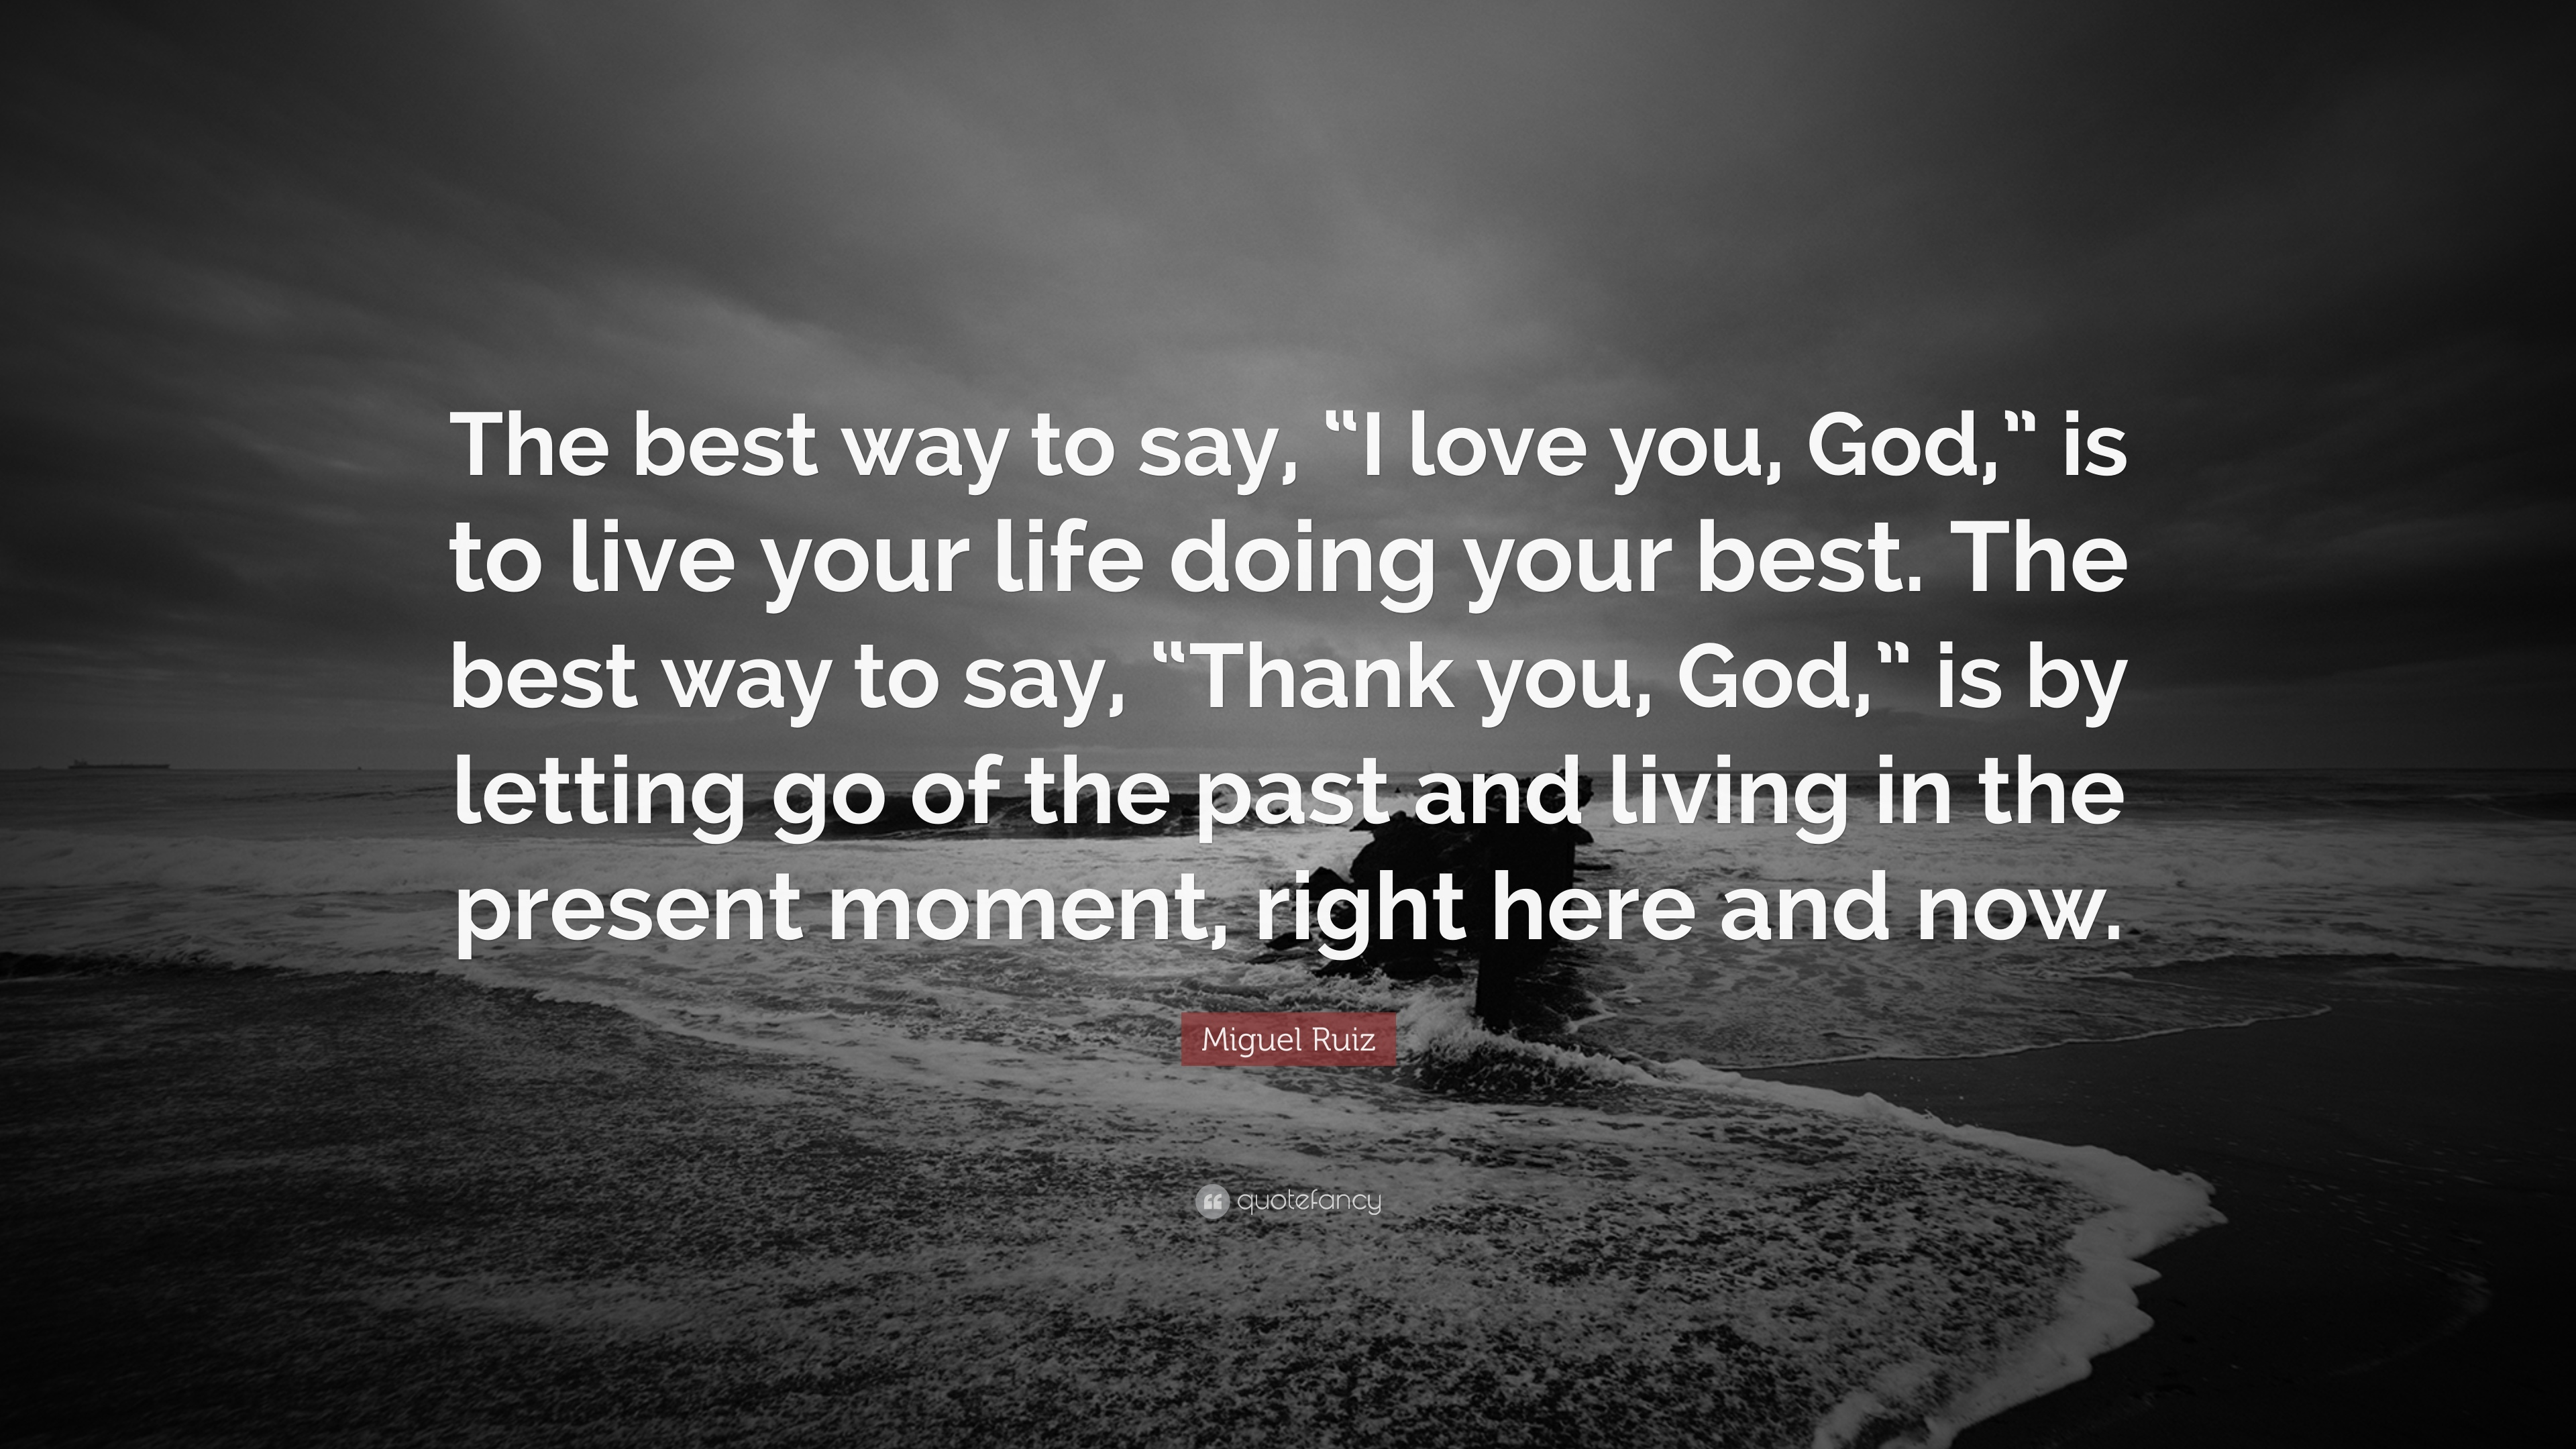 Miguel Ruiz Quote: The best way to say, I love you, God